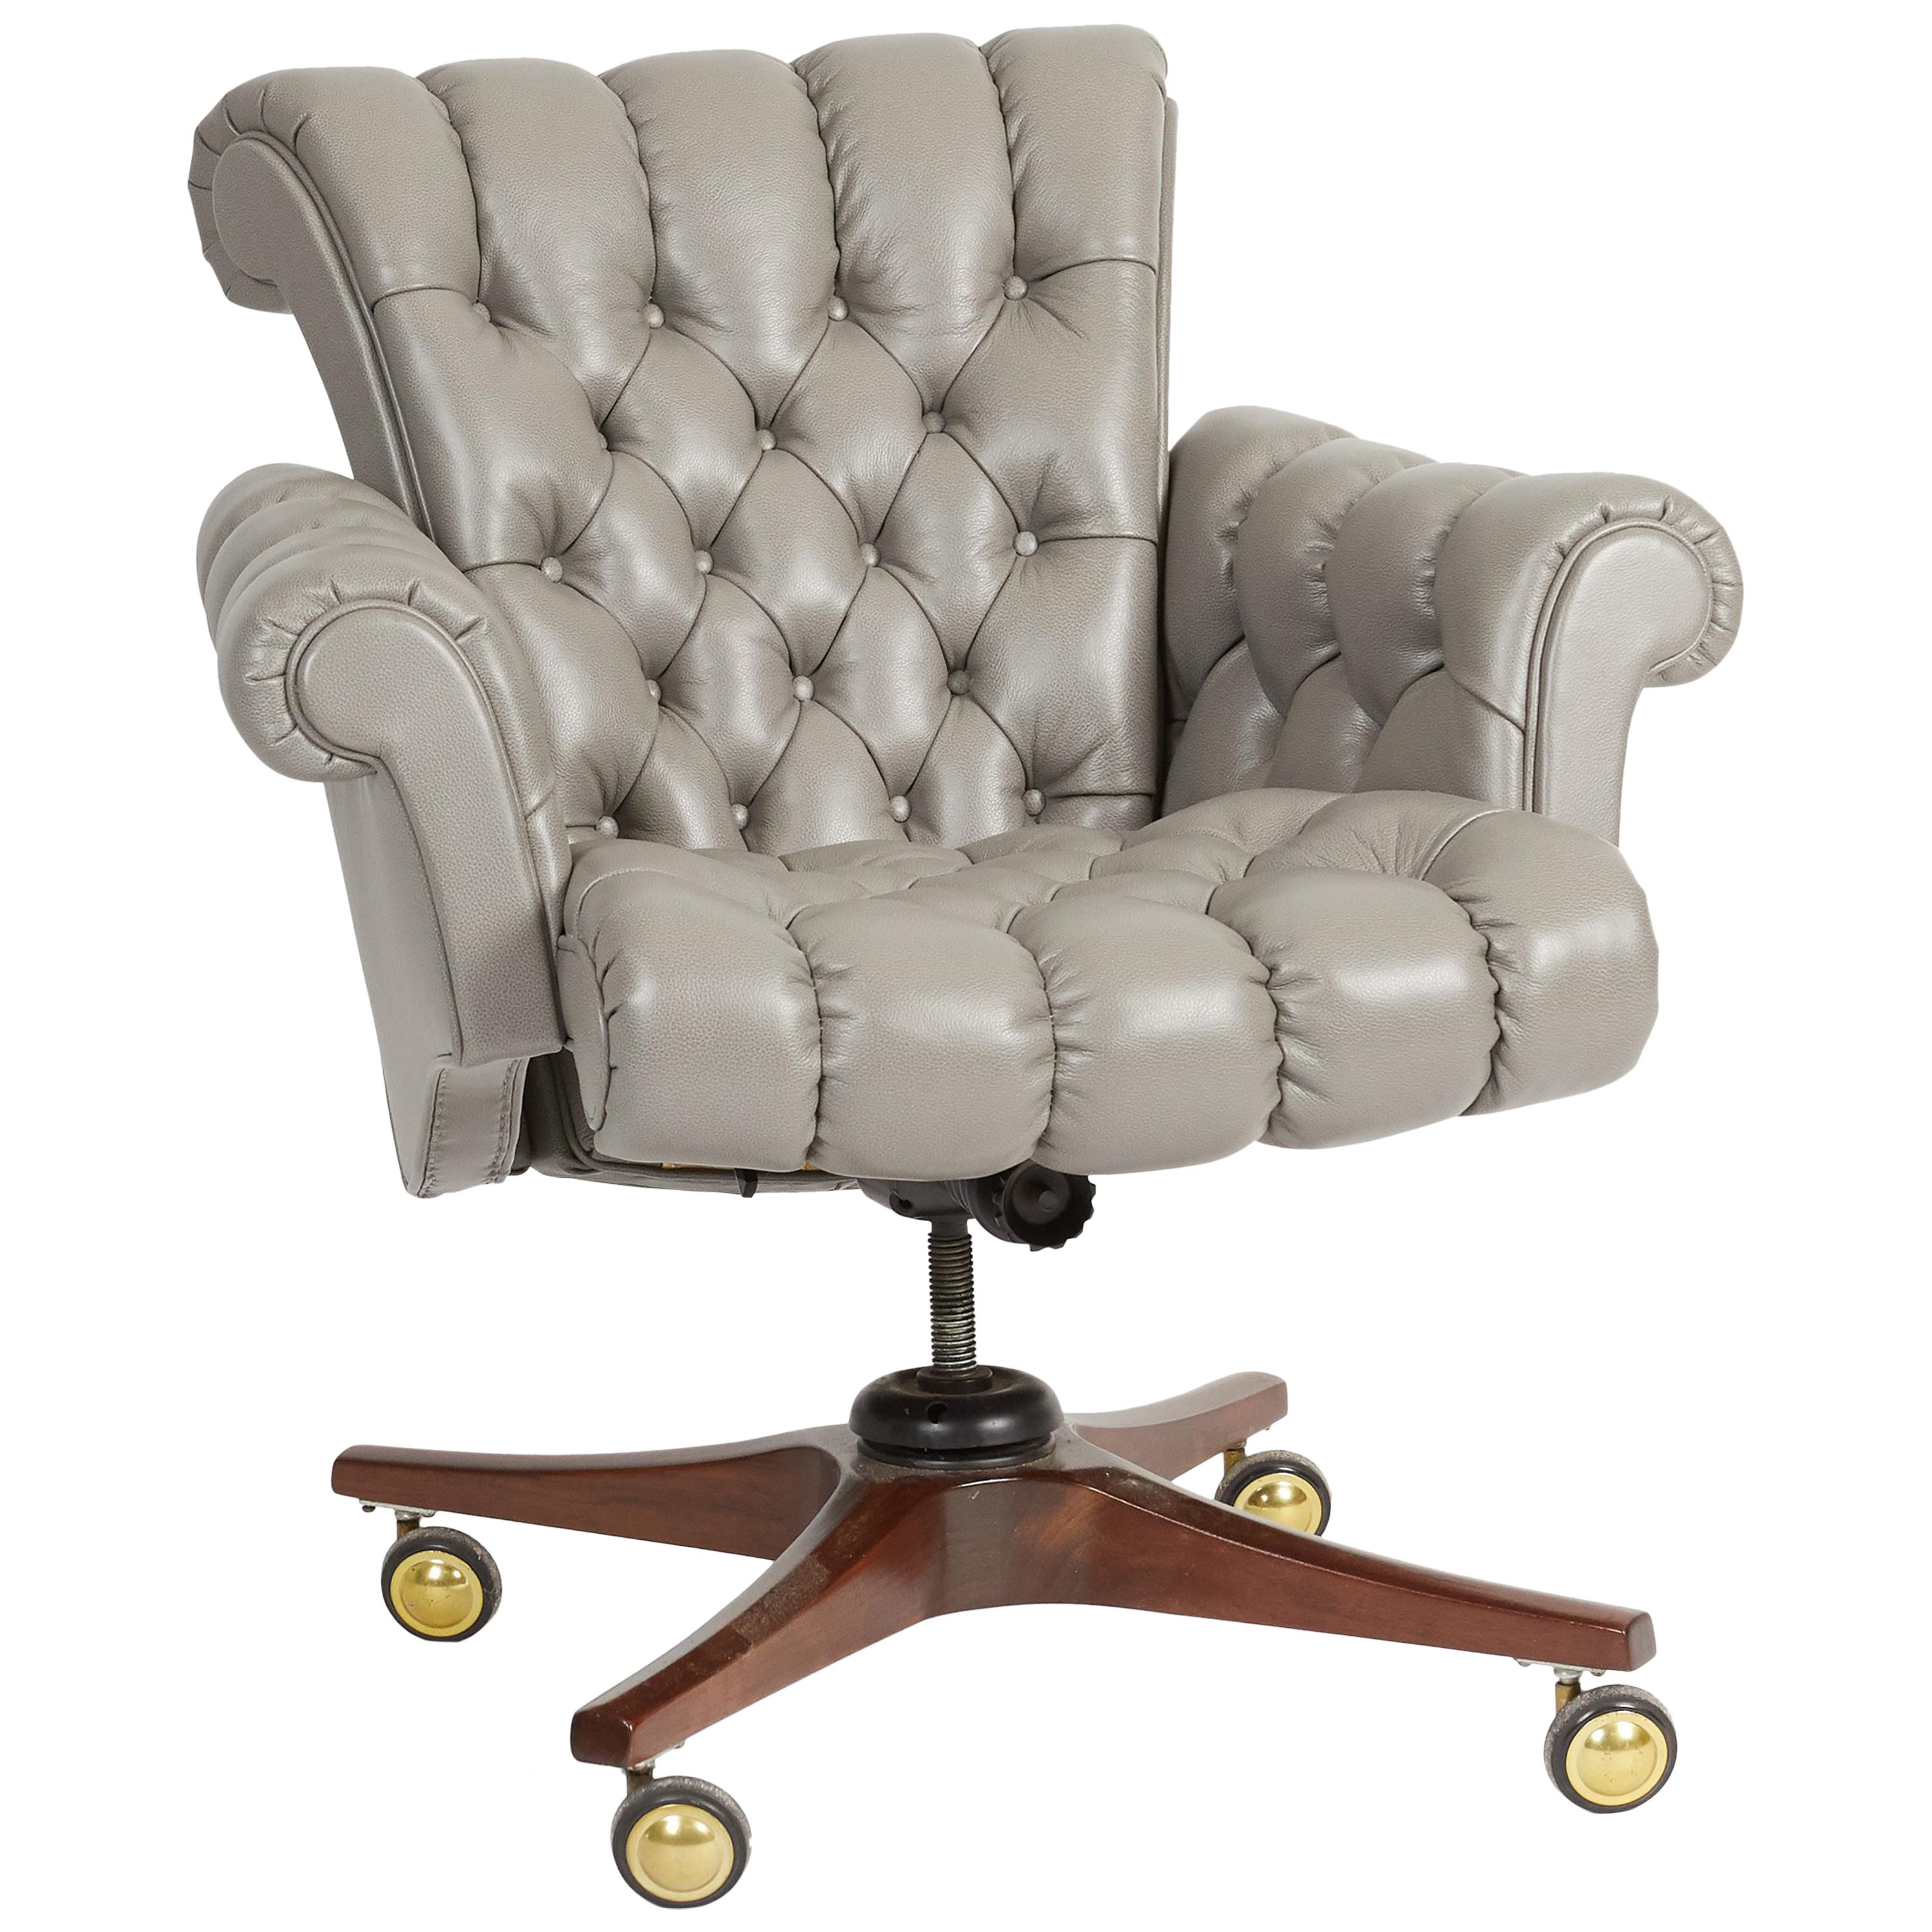 """Shop For Cheap Model 932 """"in Clover"""" Executive Office Chair By Edward Wormley For Dunbar Post-1950 Furniture"""